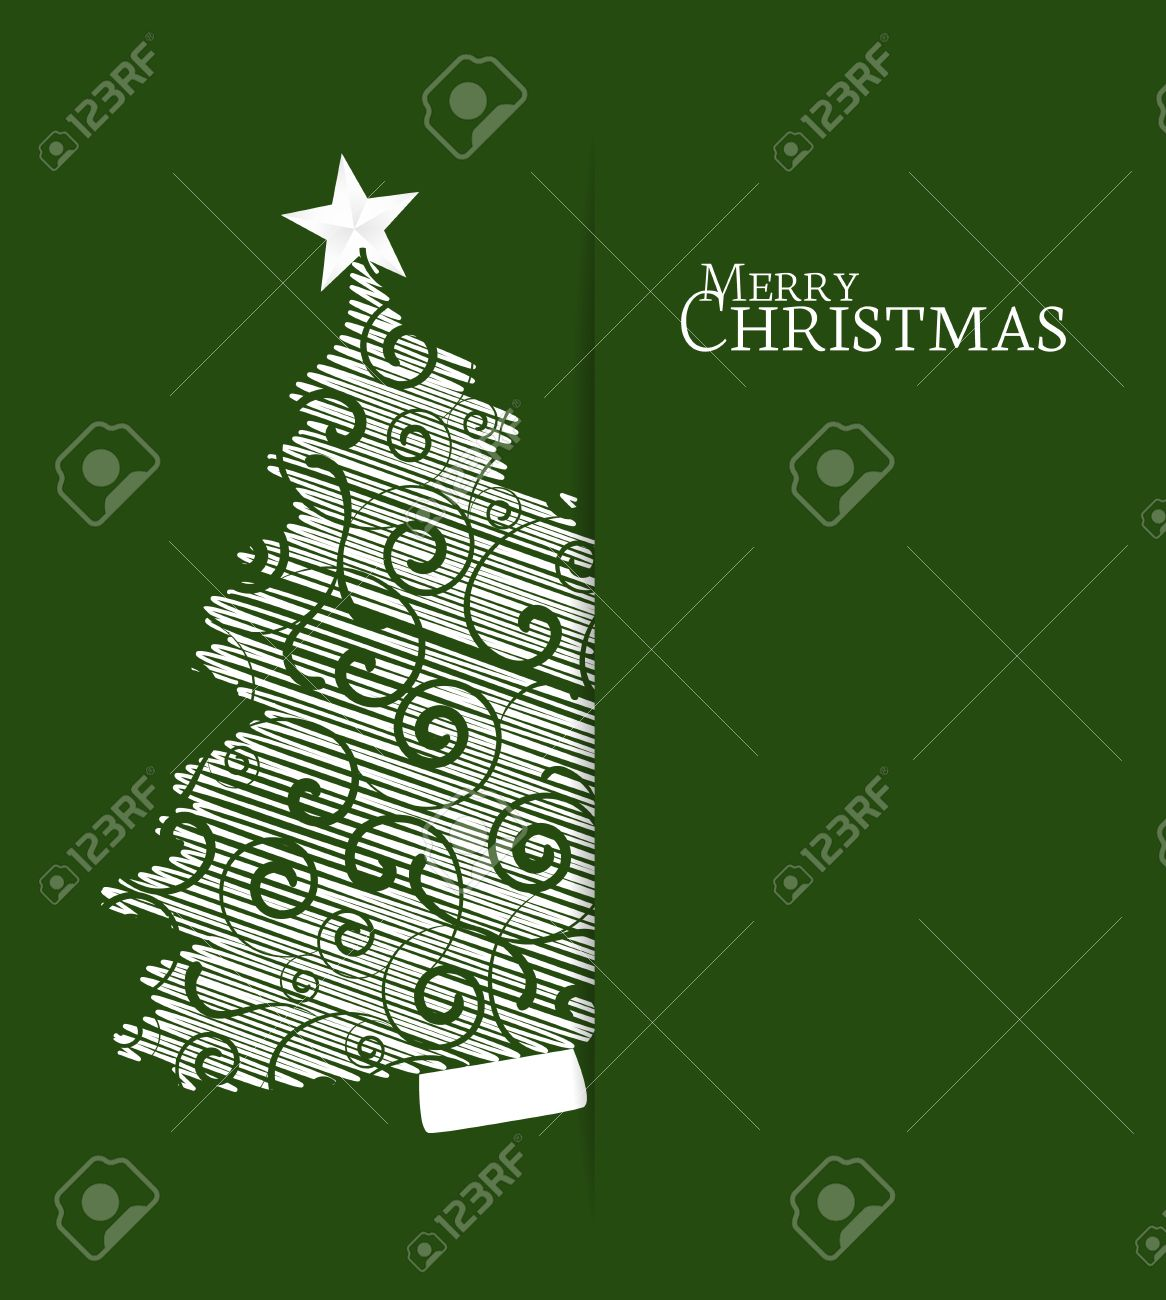 Green background with Christmas tree - 29832343